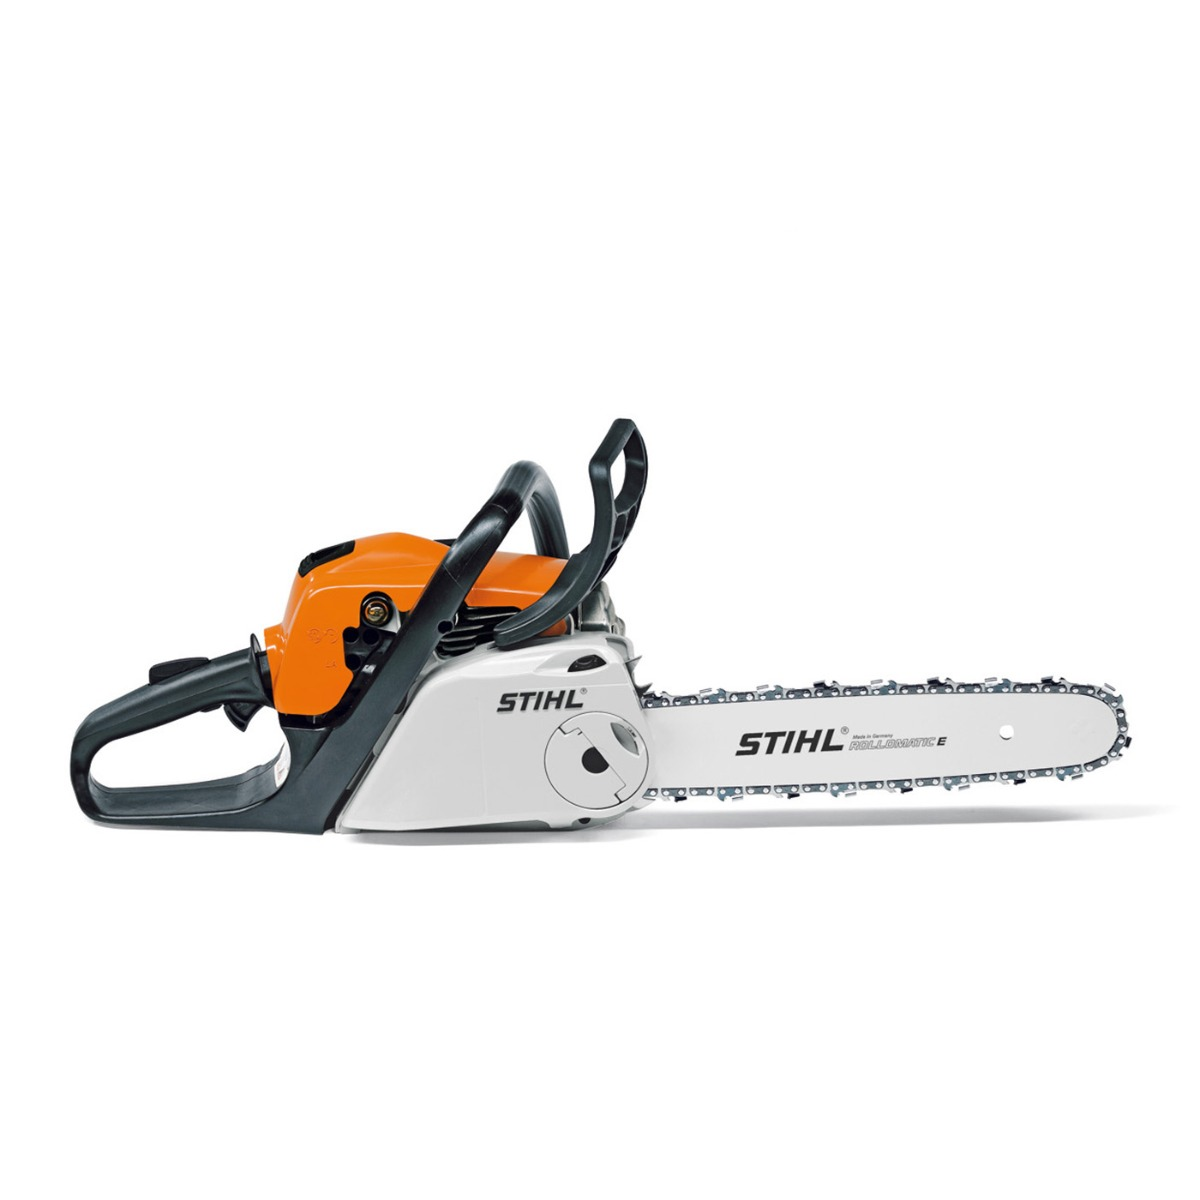 STIHL MS 211 C-BE 16